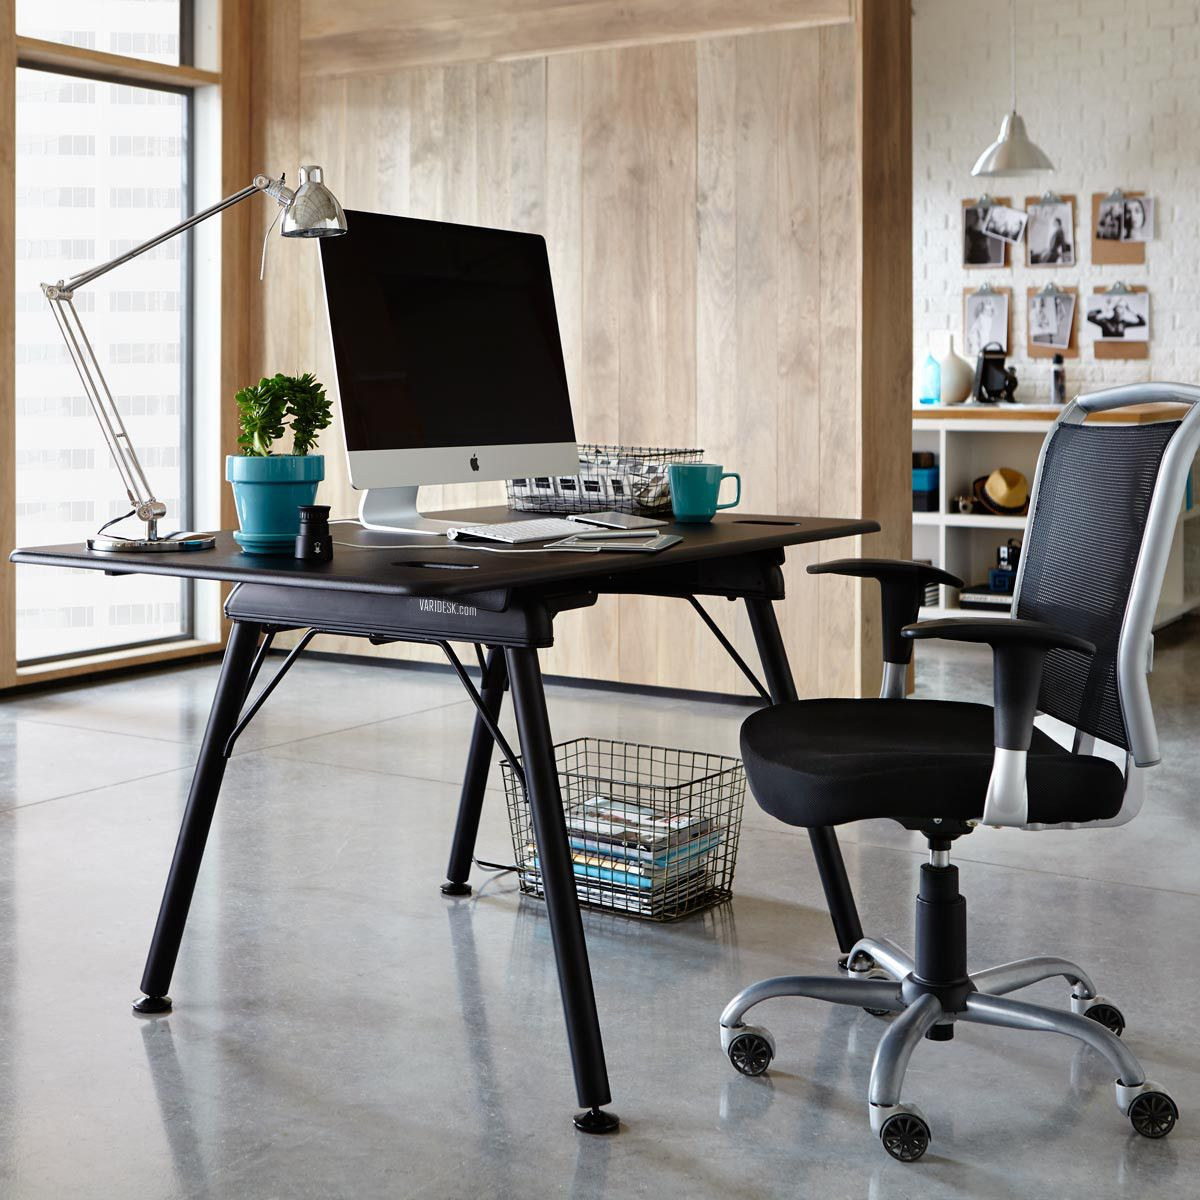 Ergotron workfit d sit stand desktop workstation radius office - Explore Our Wide Selection Of Standing Desks Sit Stand Desks Adjustable Desks And Standing Desk Accessories Buy Your Varidesk Standing Desk Today